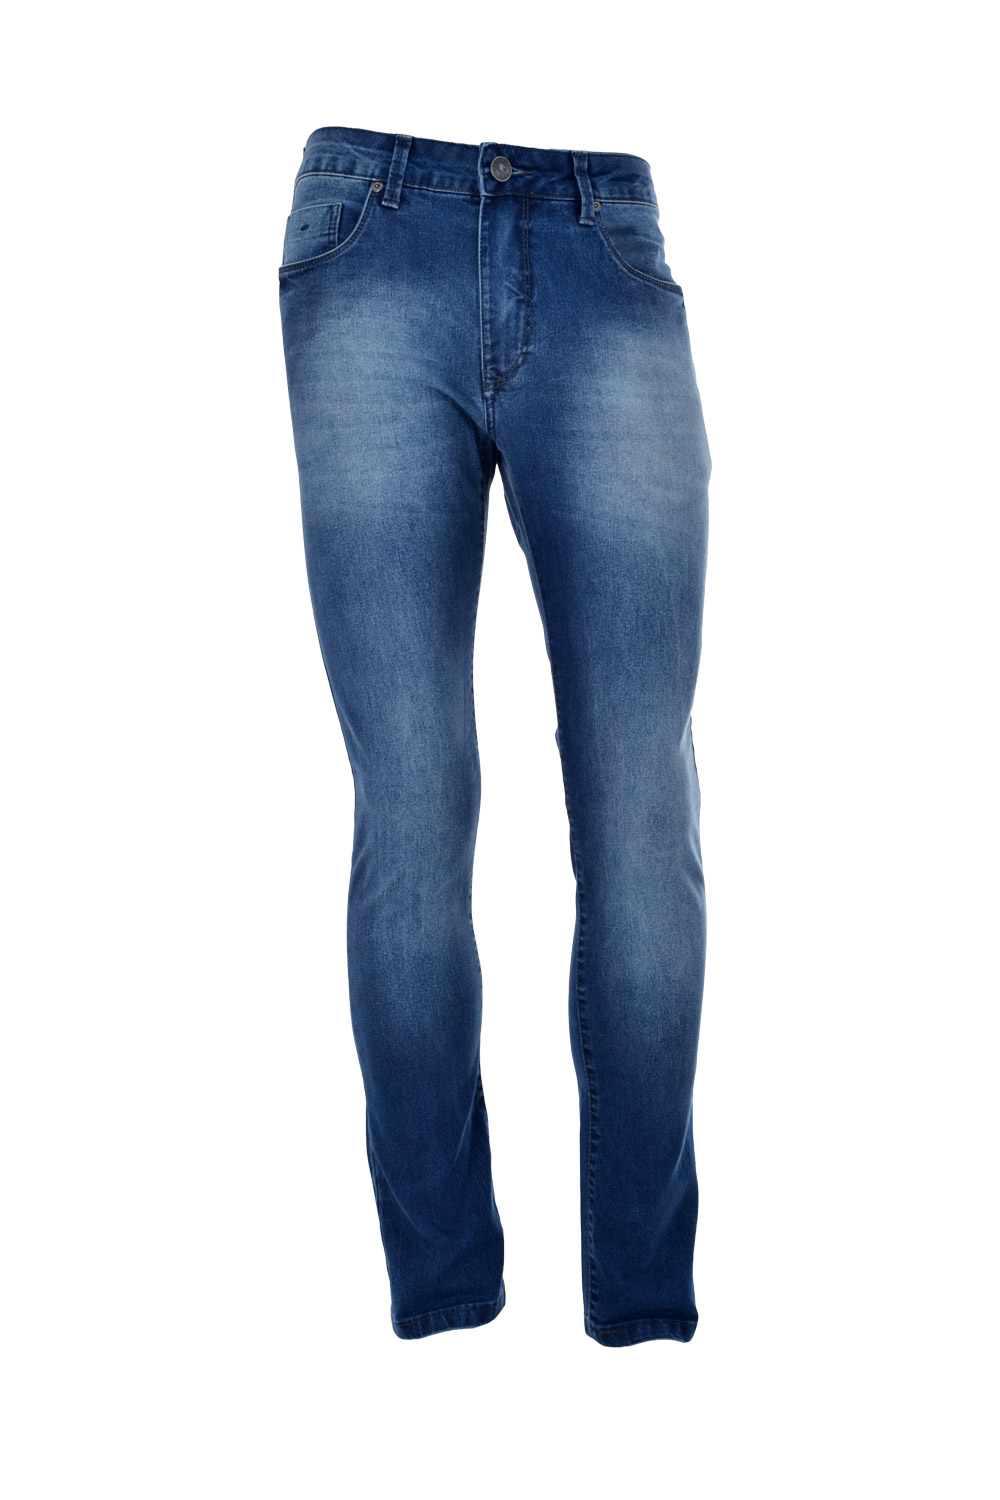 CALÇA JEANS BLUES ALGODAO & ELASTANO 5 POCKETS STONED DESTROYED